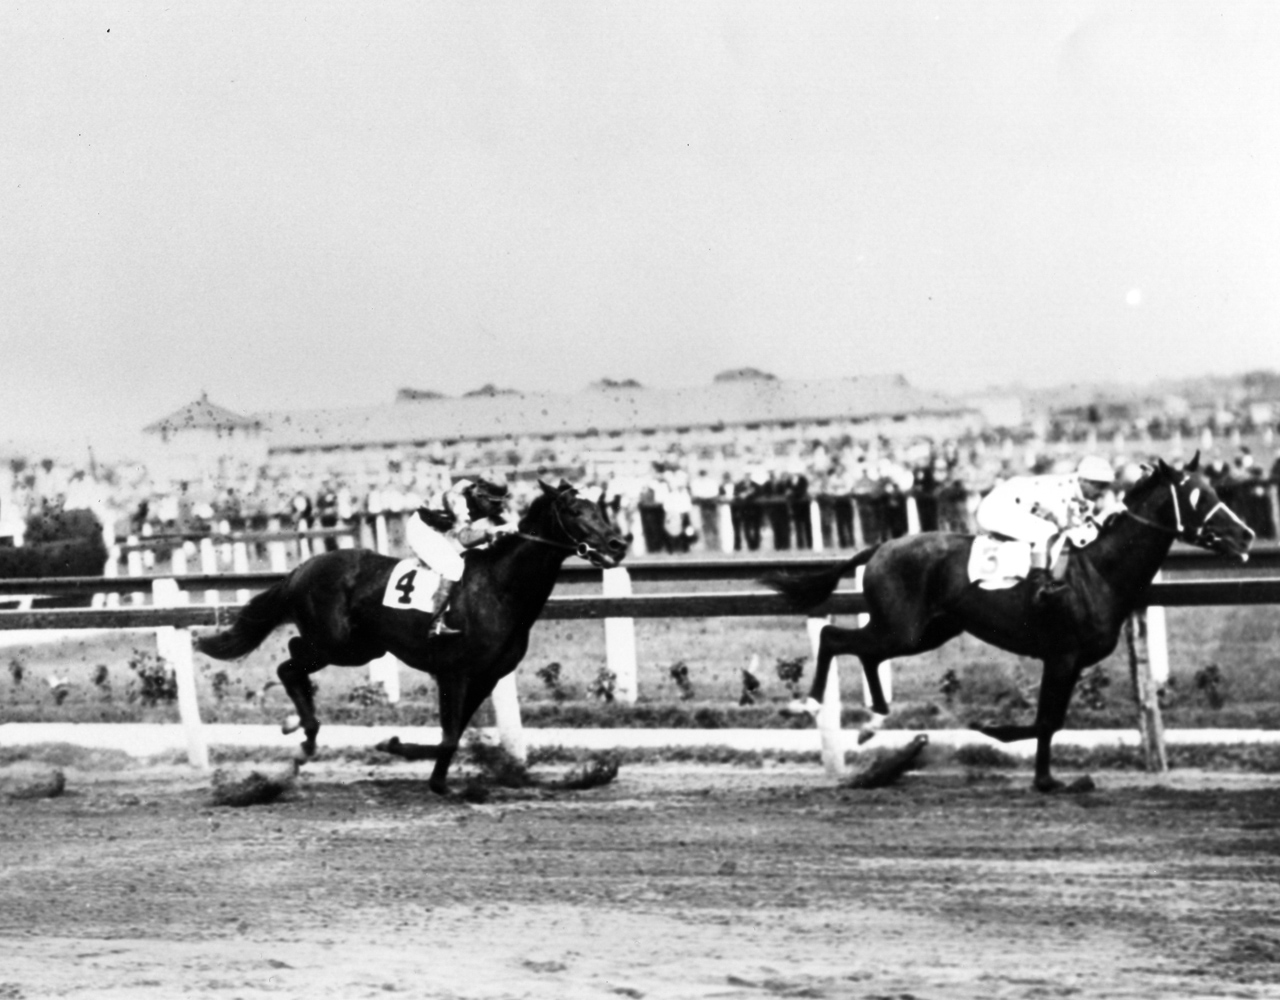 Gallant Fox (Earl Sande up) winning the 1930 Dwyer Stakes at Aqueduct, his first race after becoming a Triple Crown winner (Keeneland Library Cook Collection/Museum Collection)